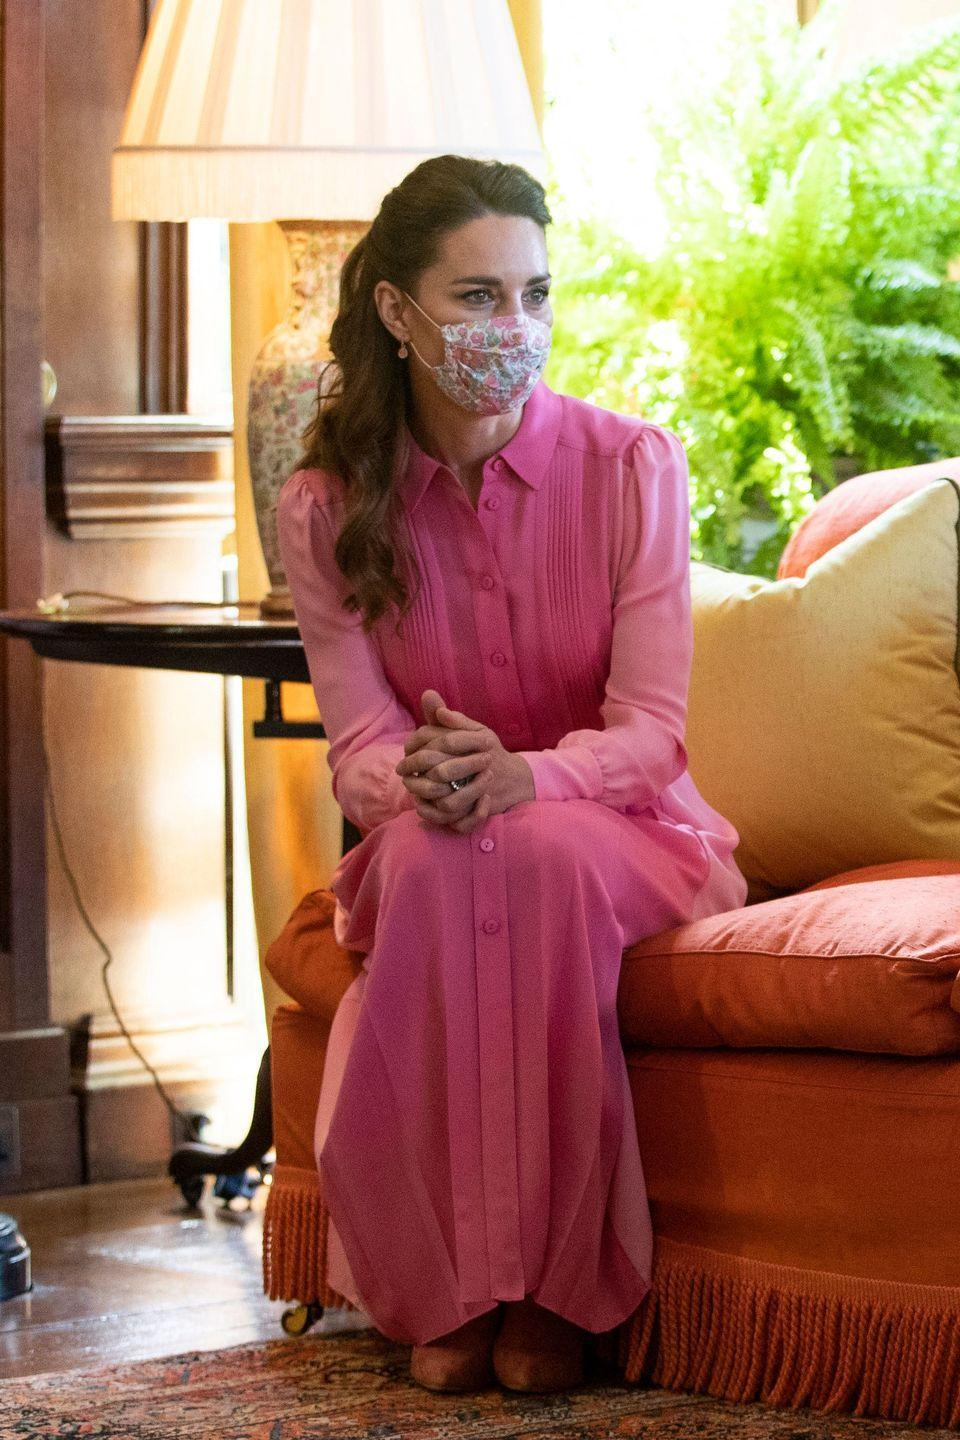 """<p>The Duchess met five year-old Mila Sneddon, a cancer patient who was featured in Kate's <em><a href=""""https://www.townandcountrymag.com/society/tradition/a35960777/kate-middleton-hold-still-covid-photography-book/"""" rel=""""nofollow noopener"""" target=""""_blank"""" data-ylk=""""slk:Hold Still"""" class=""""link rapid-noclick-resp"""">Hold Still </a></em><a href=""""https://www.townandcountrymag.com/society/tradition/a35960777/kate-middleton-hold-still-covid-photography-book/"""" rel=""""nofollow noopener"""" target=""""_blank"""" data-ylk=""""slk:photography book"""" class=""""link rapid-noclick-resp"""">photography book</a>. <a href=""""https://twitter.com/KensingtonRoyal/status/1397935506621669376"""" rel=""""nofollow noopener"""" target=""""_blank"""" data-ylk=""""slk:When the pair spoke on the phone"""" class=""""link rapid-noclick-resp"""">When the pair spoke on the phone</a>, Kate told Mila that when they met, she would dress like """"a princess"""" and wear pink. The Duchess kept that promise, arriving to their meeting in this bubblegum ME+EM dress. </p><p><a class=""""link rapid-noclick-resp"""" href=""""https://go.redirectingat.com?id=74968X1596630&url=https%3A%2F%2Fwww.meandem.com%2Fus%2Fcolour-block-silk-shirt-dress-and-belt-sugar-pink-bubblegum&sref=https%3A%2F%2Fwww.townandcountrymag.com%2Fstyle%2Ffashion-trends%2Fnews%2Fg1633%2Fkate-middleton-fashion%2F"""" rel=""""nofollow noopener"""" target=""""_blank"""" data-ylk=""""slk:Shop the Dress"""">Shop the Dress</a></p>"""